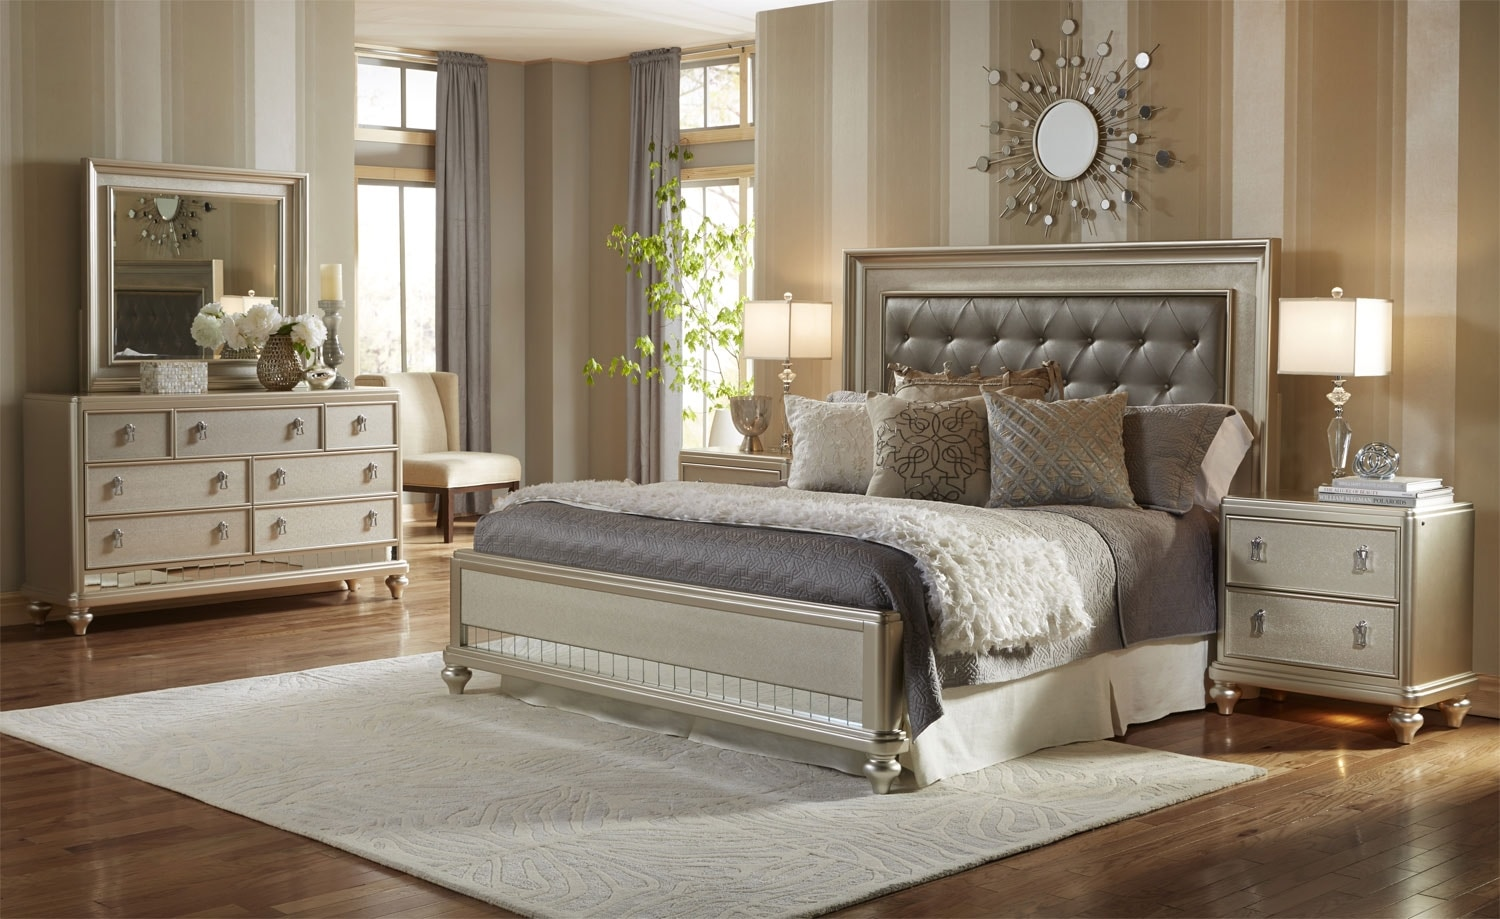 Diva Upholstered Queen Bed | The Brick